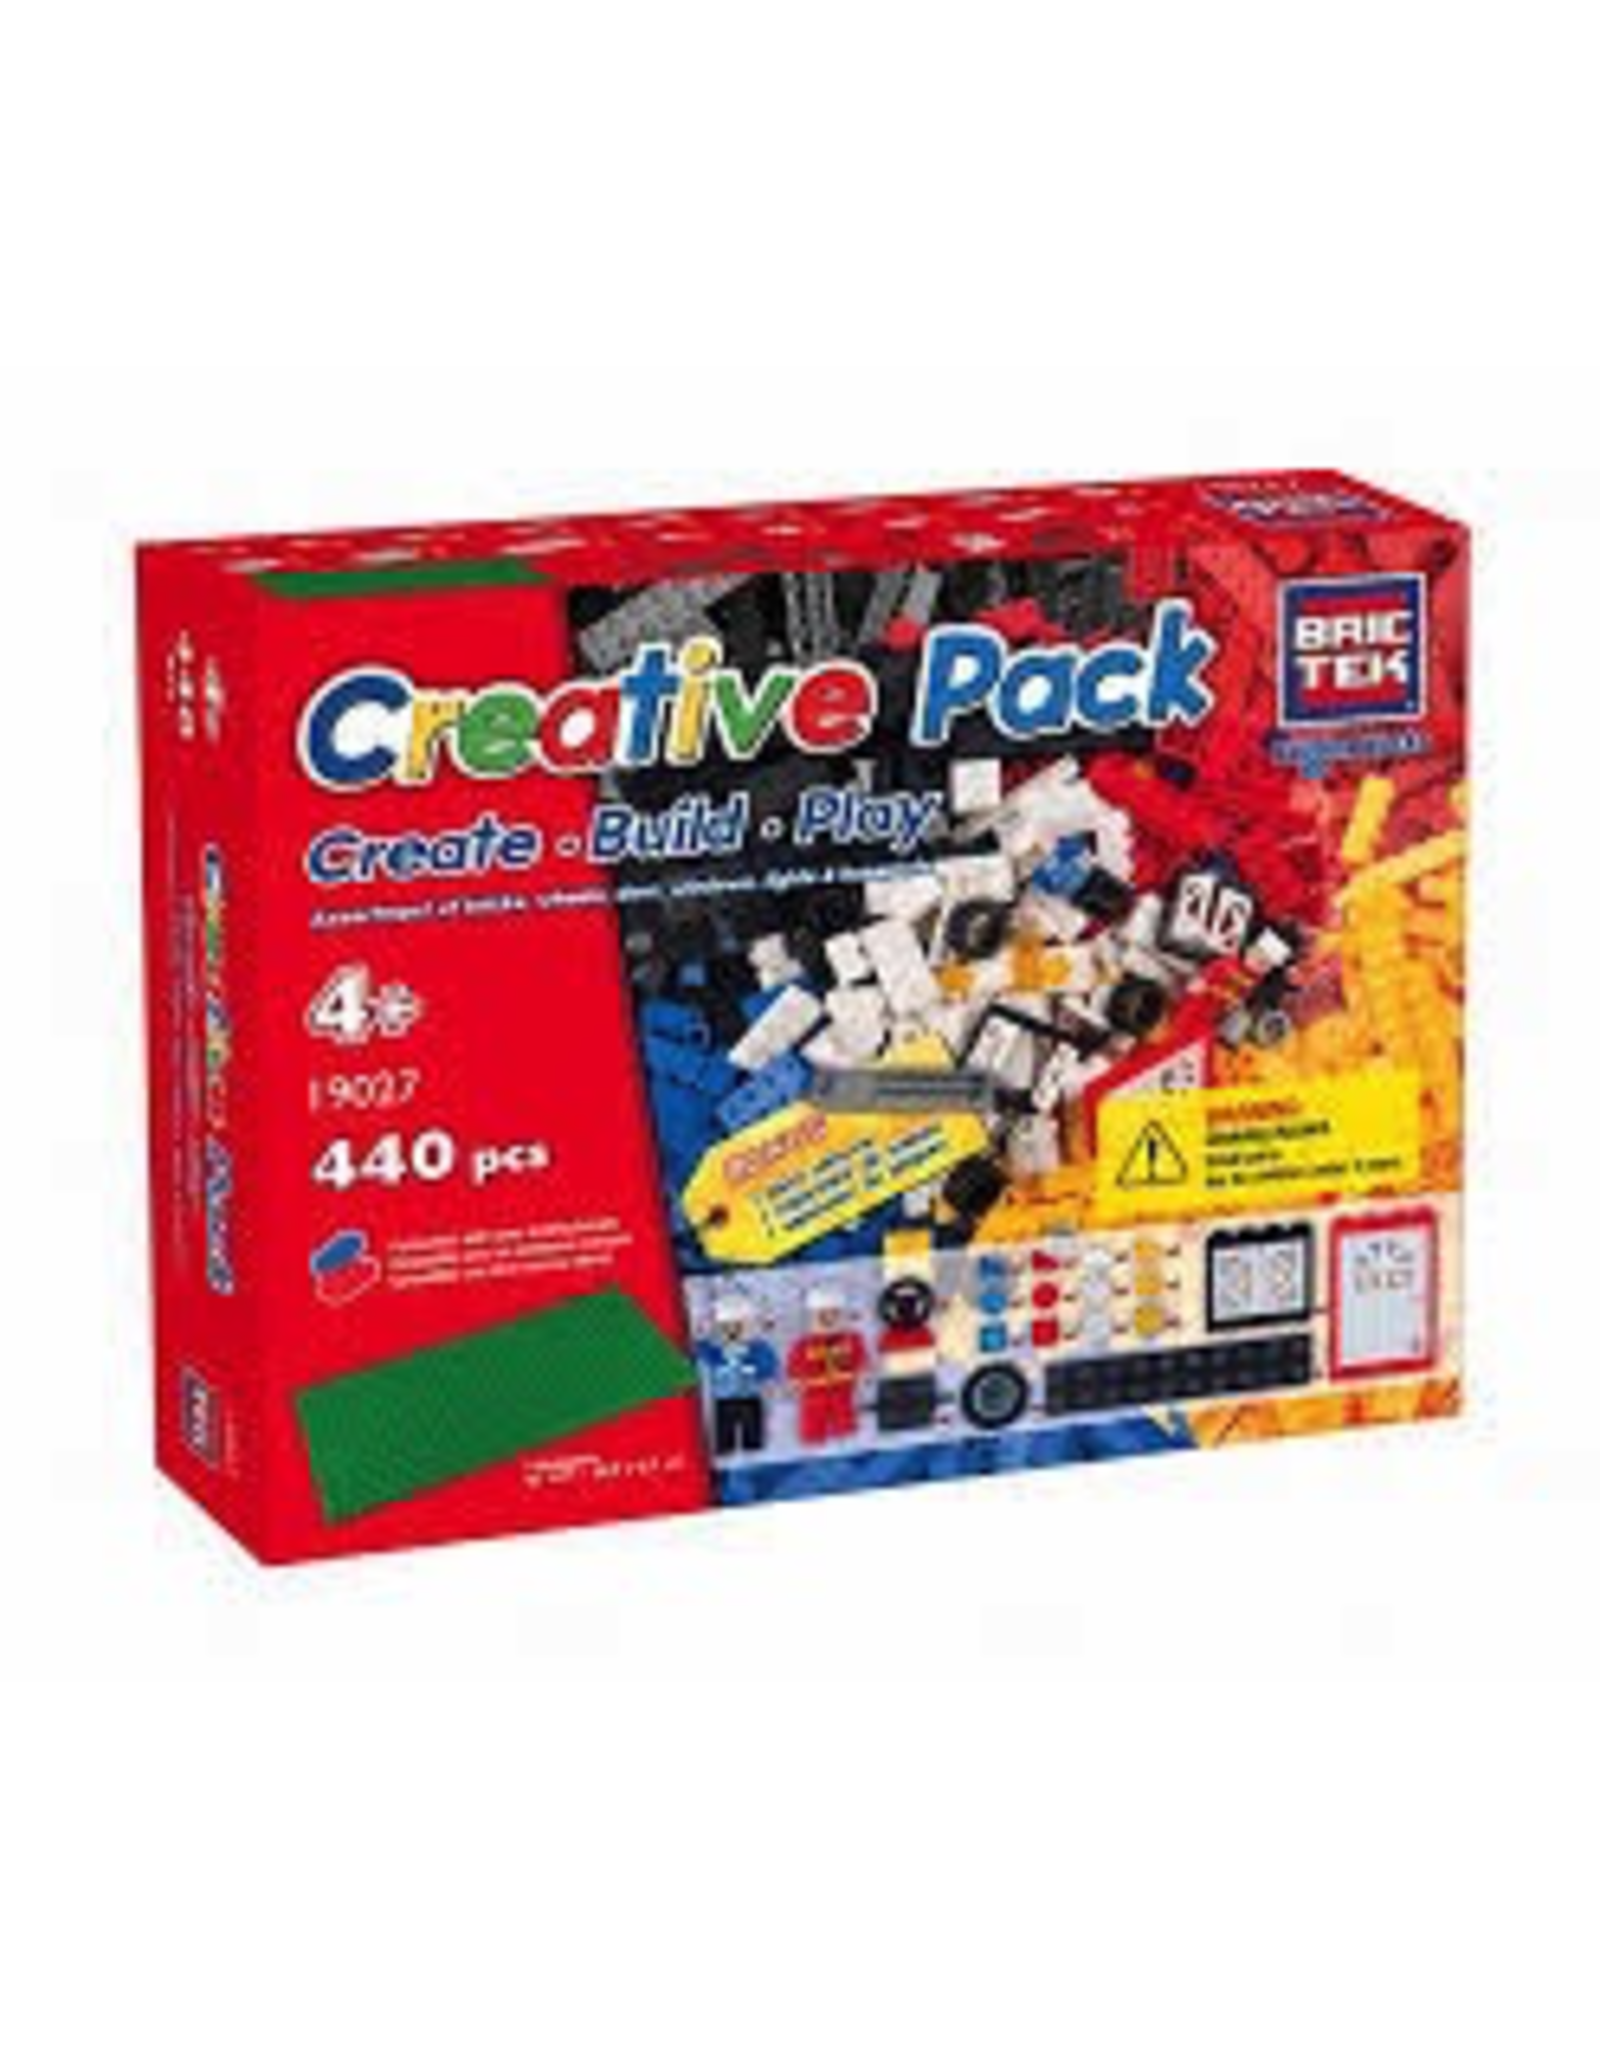 BRICTEK CREATIVE PACK 440 PCS